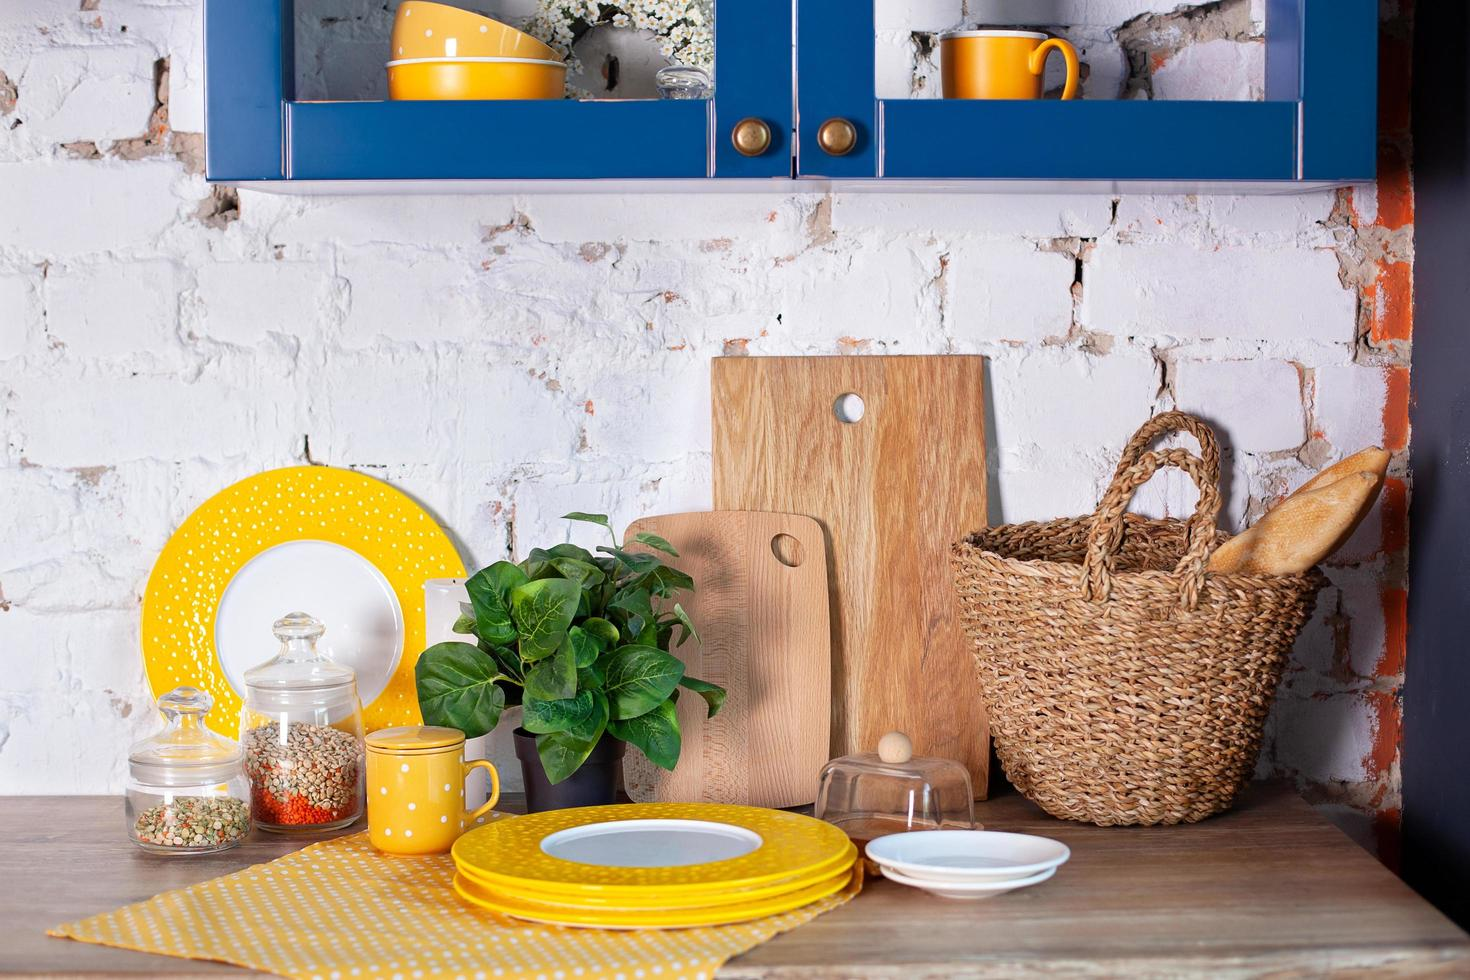 Modern kitchen with cooking utensils and clean dish ware. photo